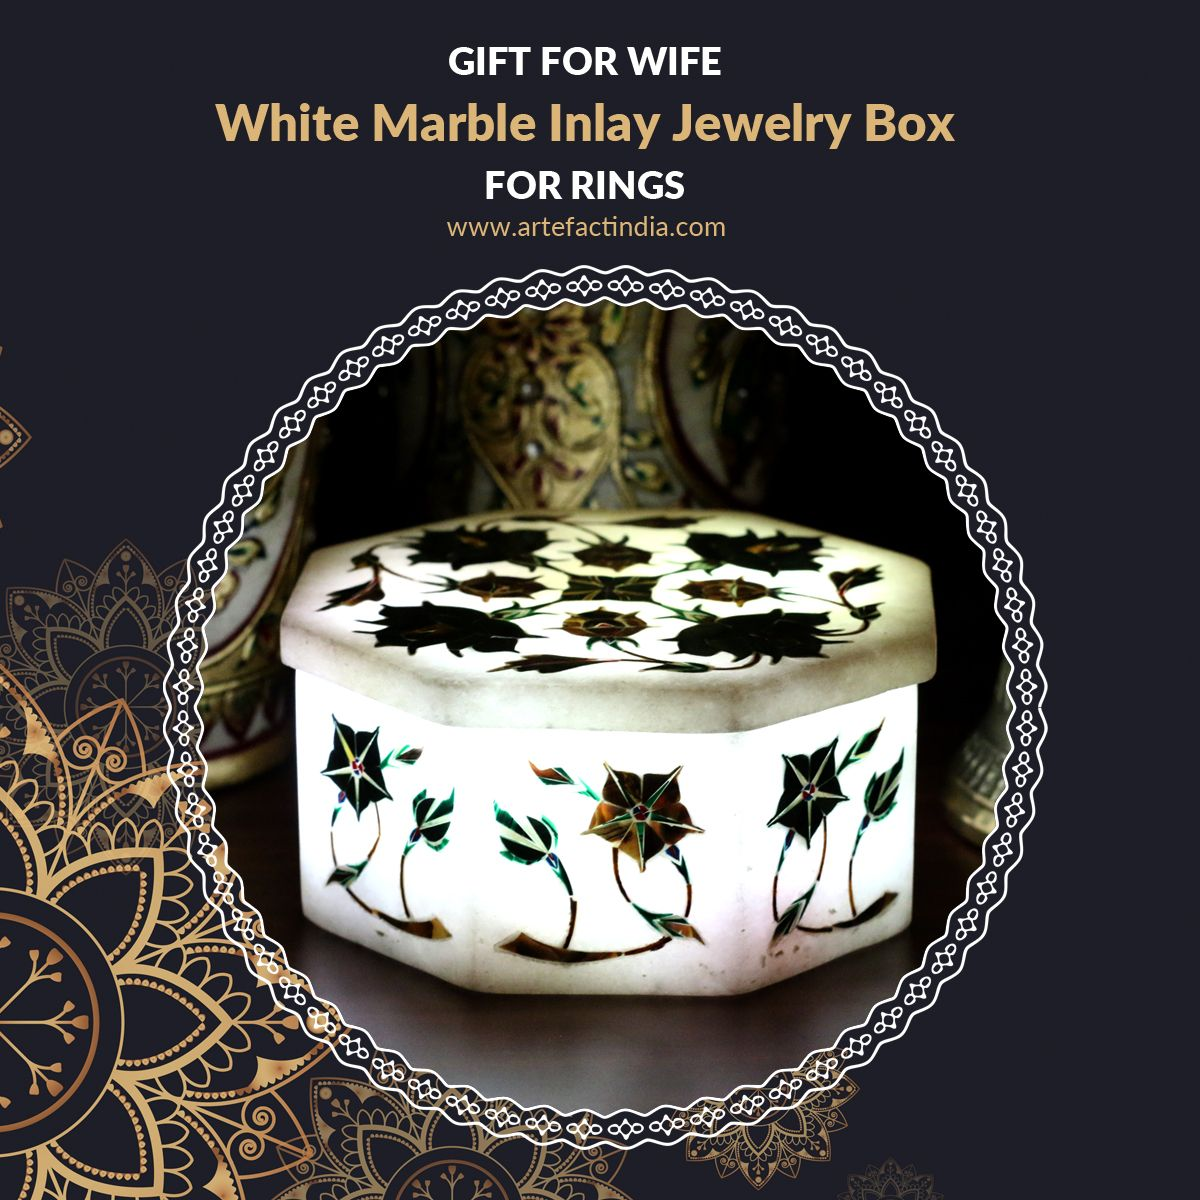 Gift for Wife, White Marble Inlay Jewellery Box for Rings